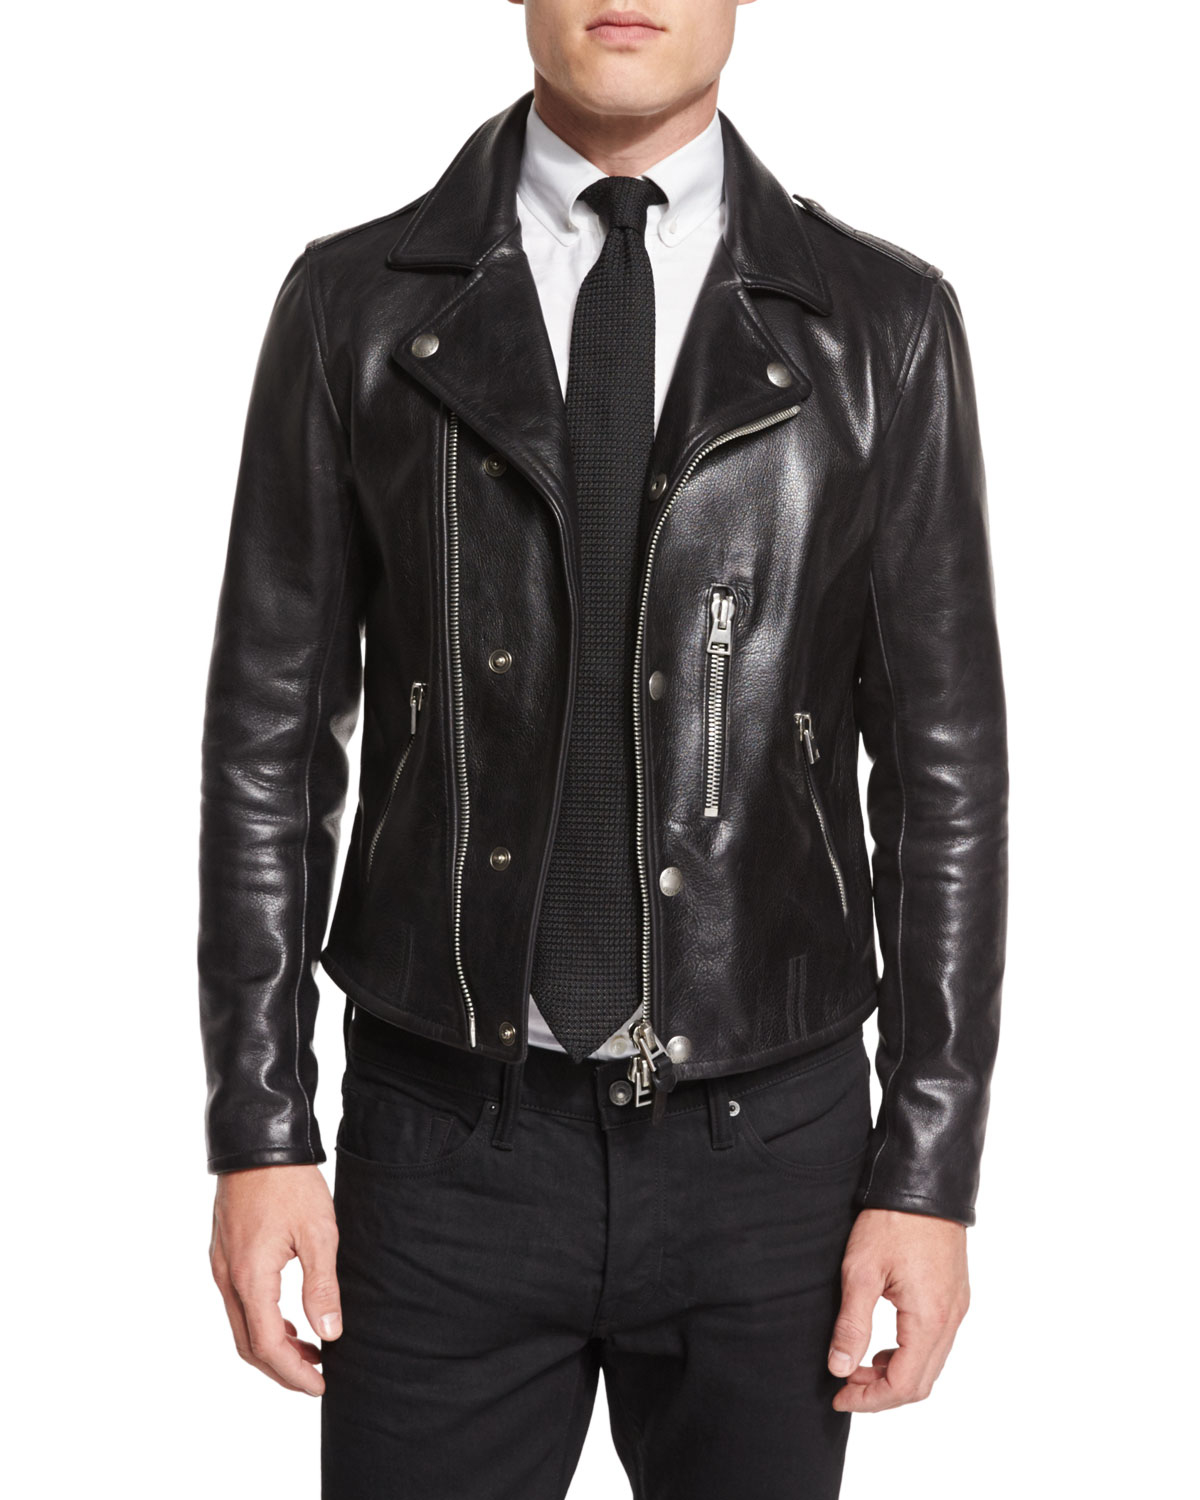 tom ford asymmetric leather biker jacket in black for men. Black Bedroom Furniture Sets. Home Design Ideas